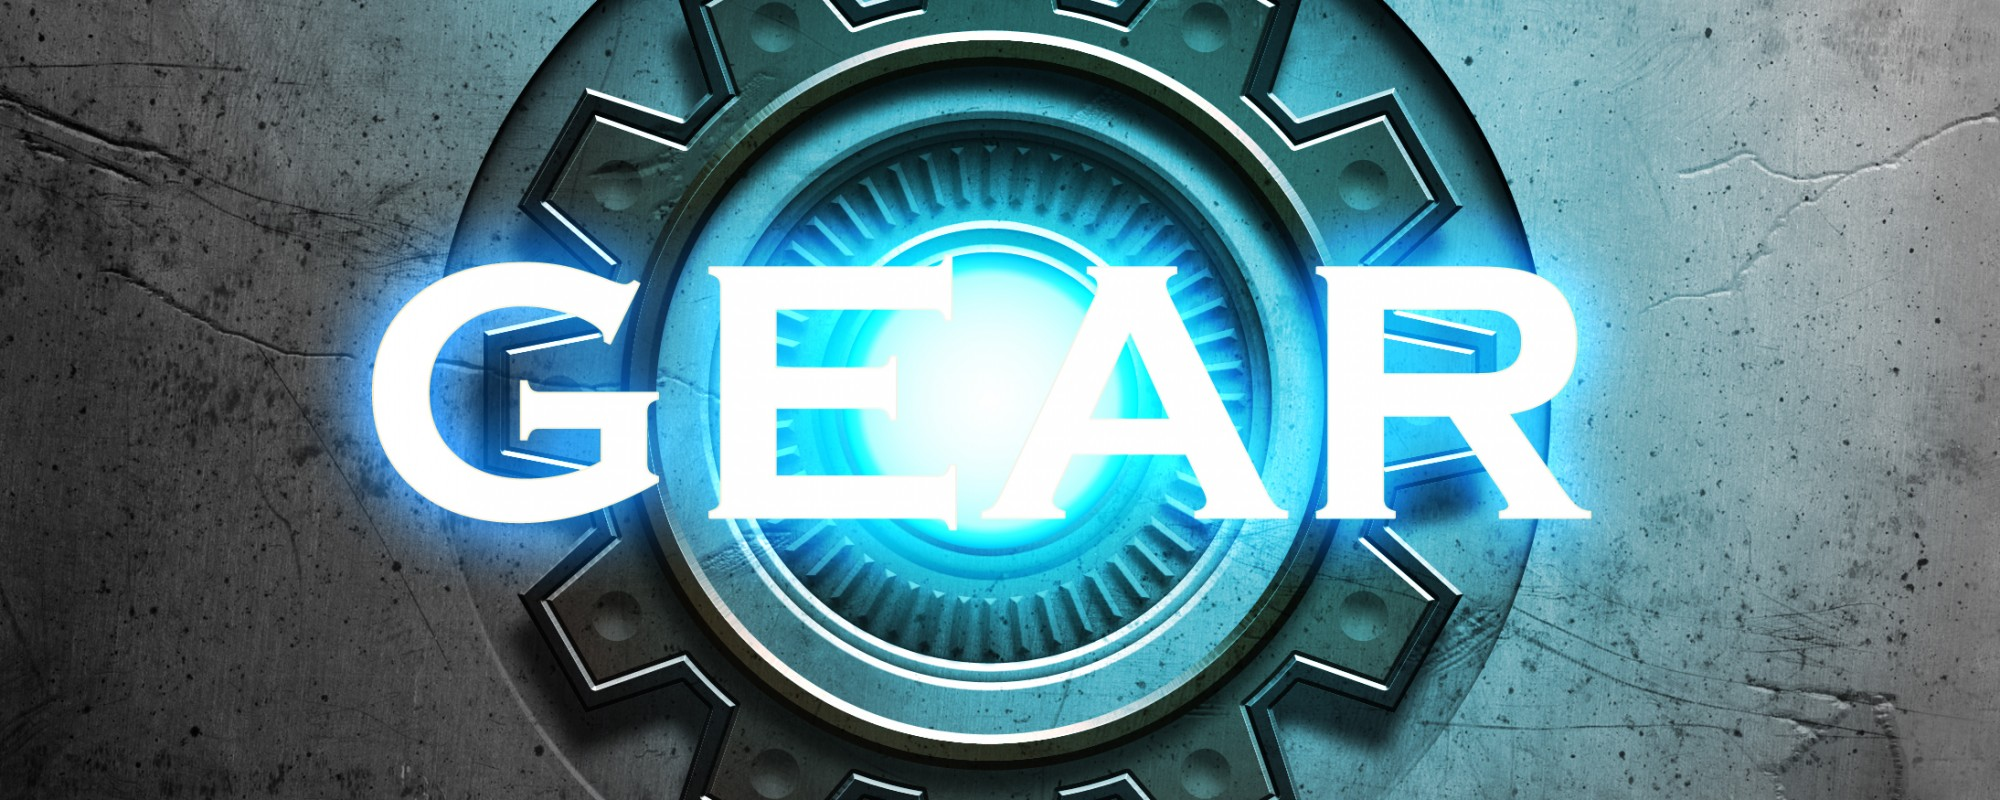 GEARS graphics